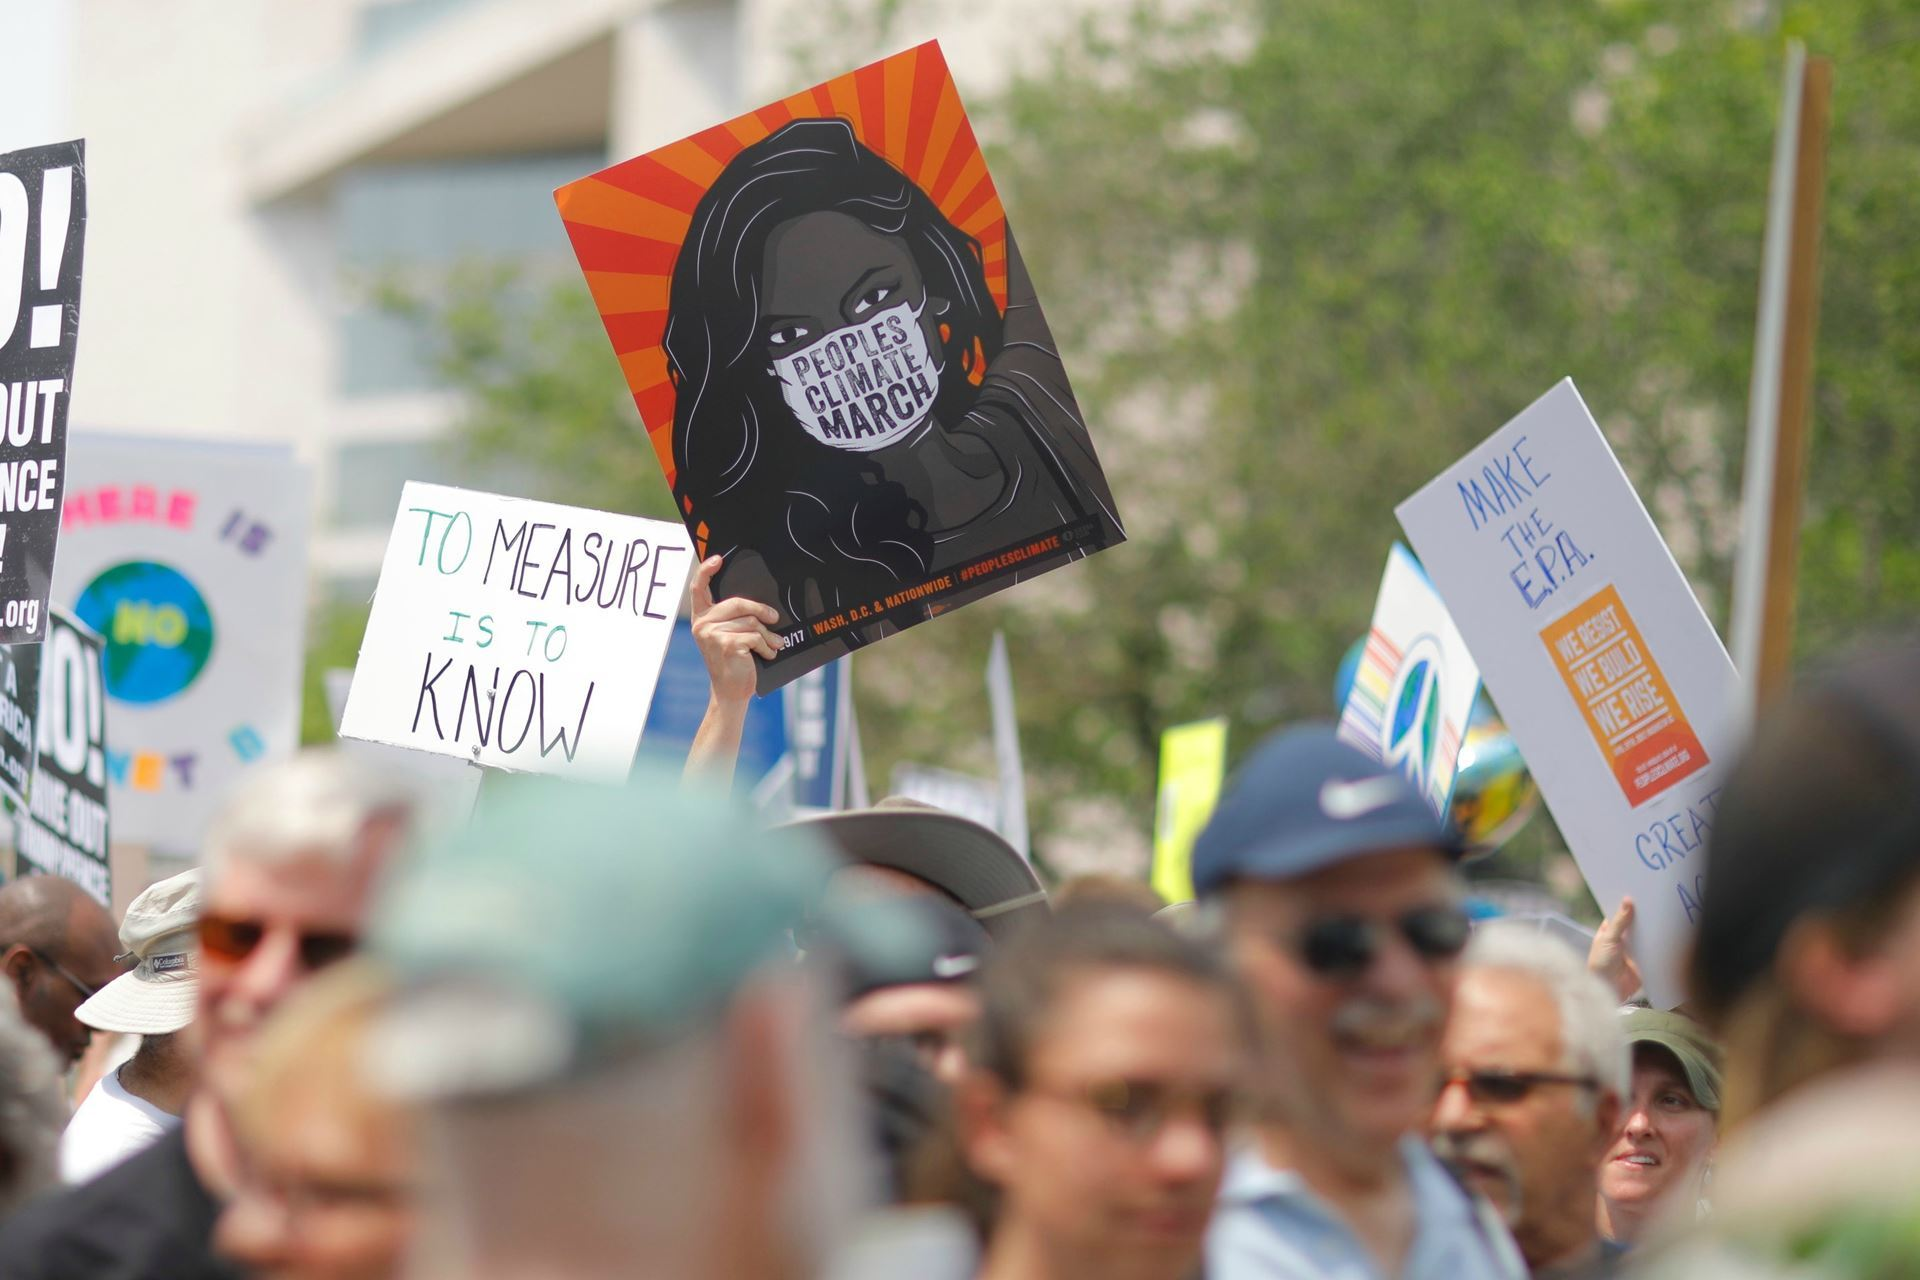 Photo of Climate marchers by The Climate Reality Project on Unsplash